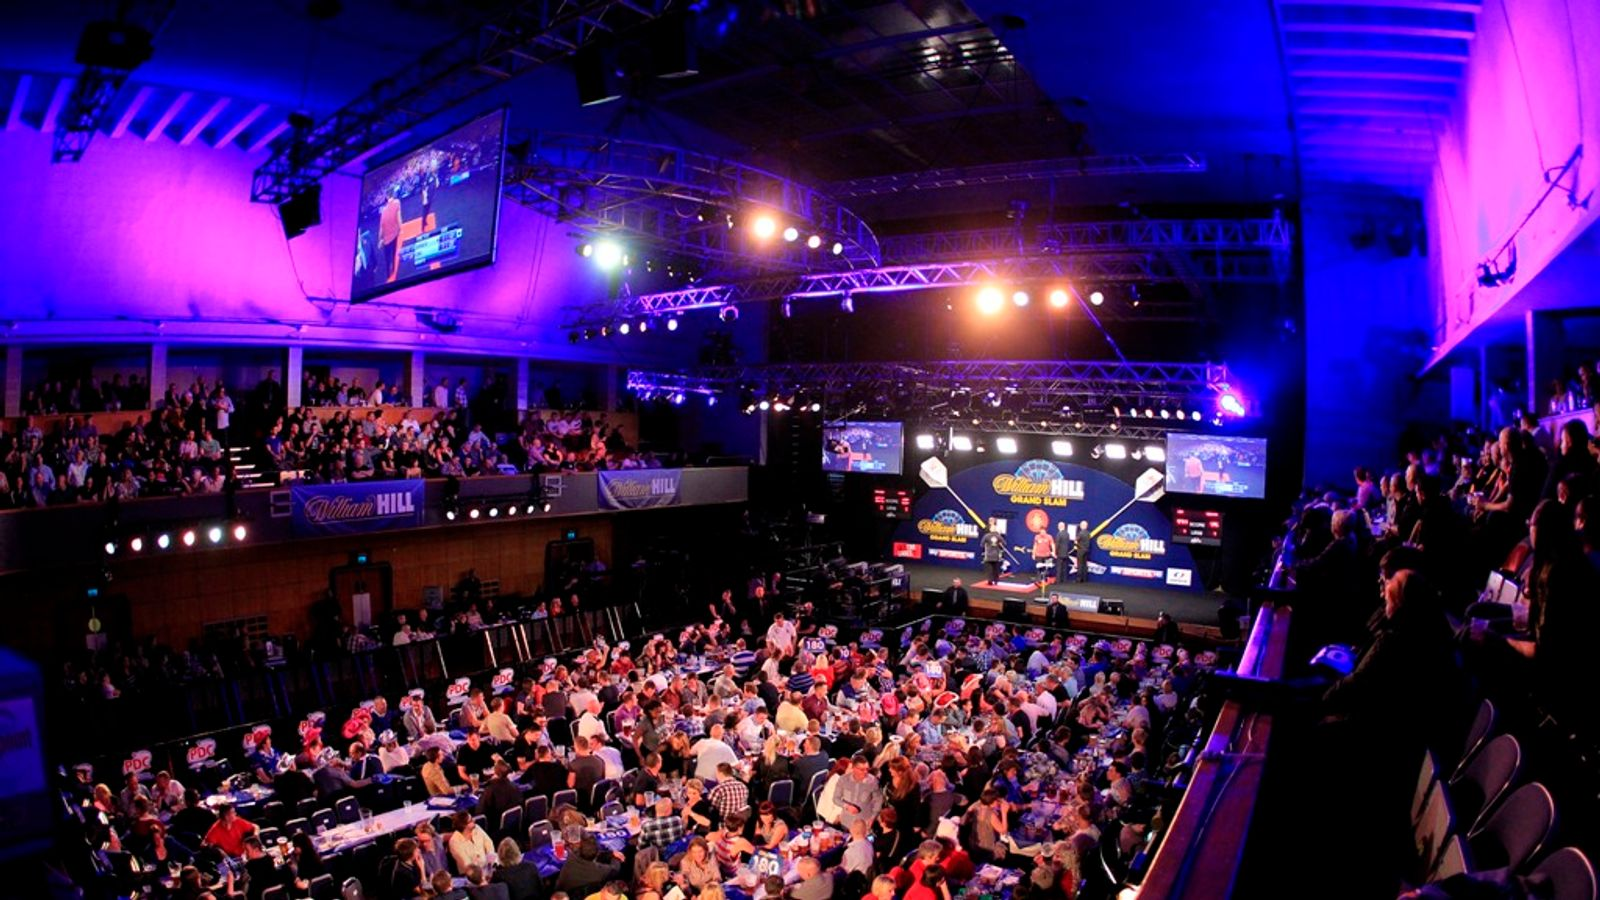 BDO and PDC stars set for Grand Slam of Darts live on Sky Sports